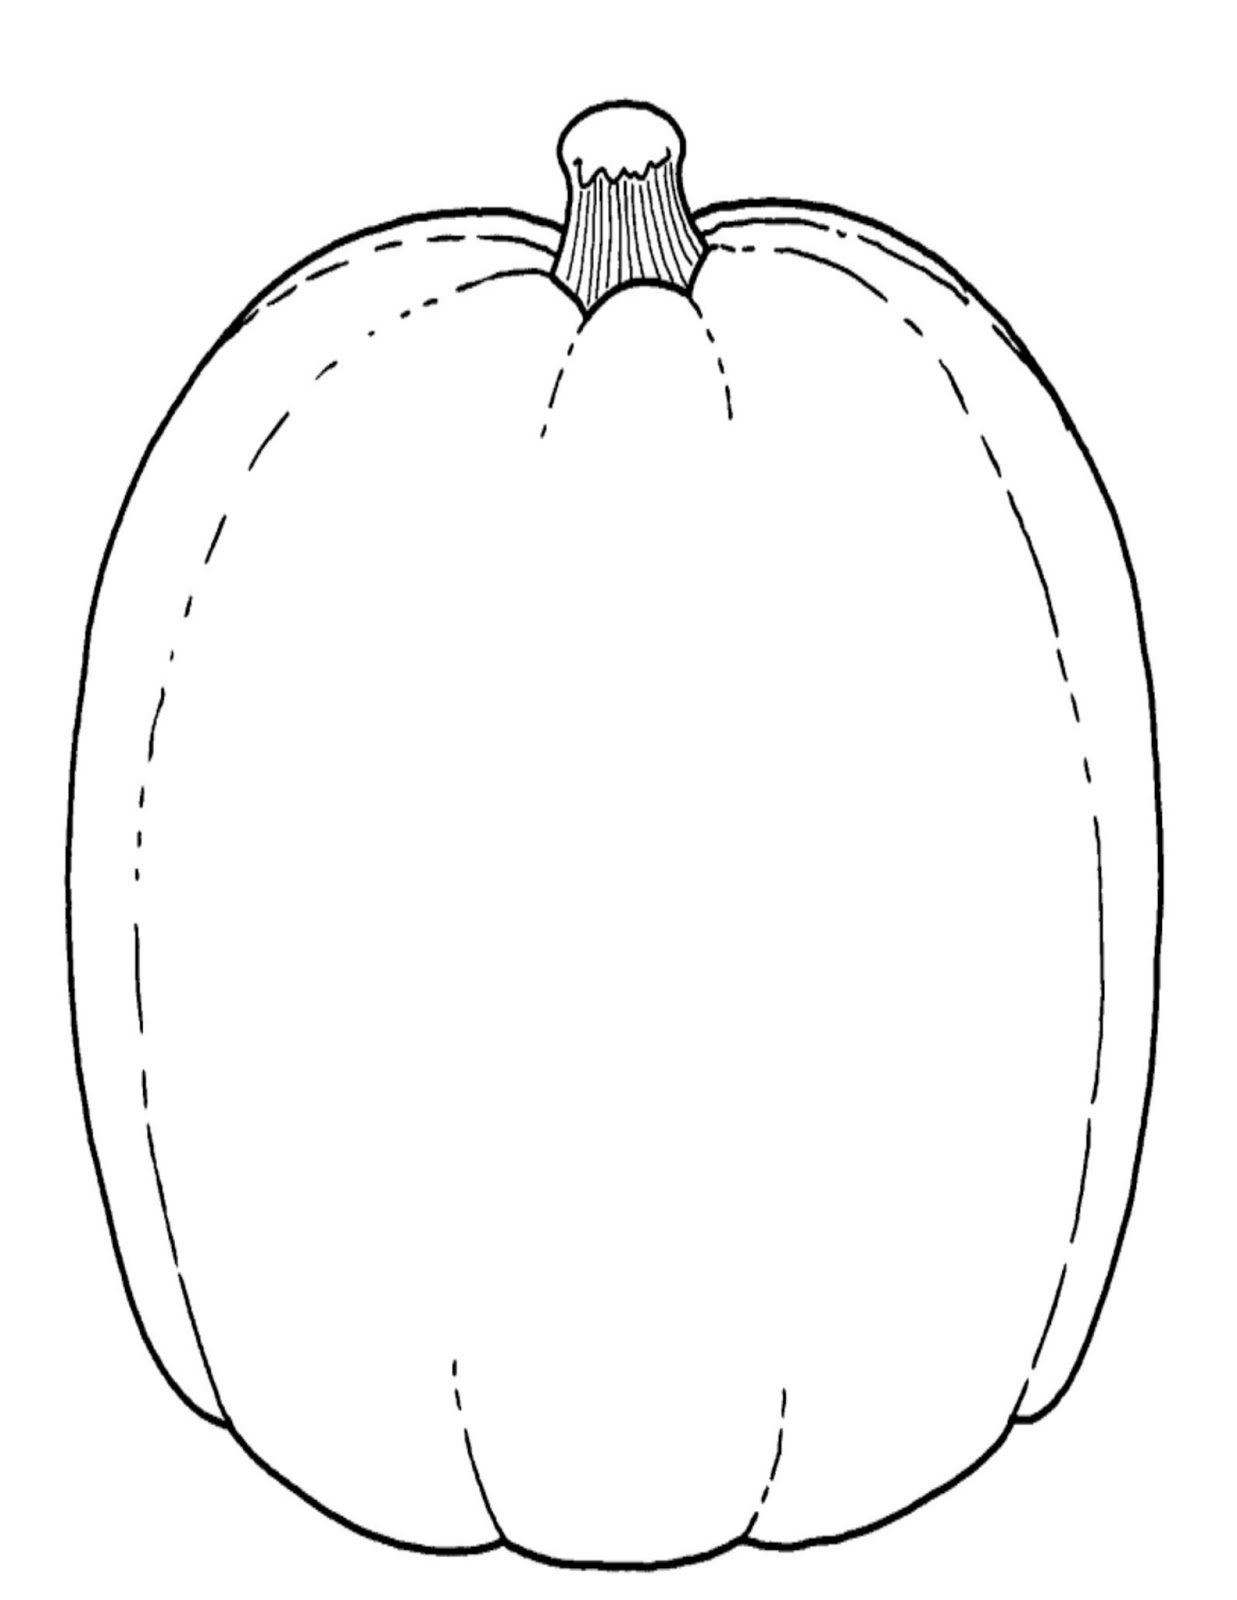 pumpkin cut out coloring pages - photo#9